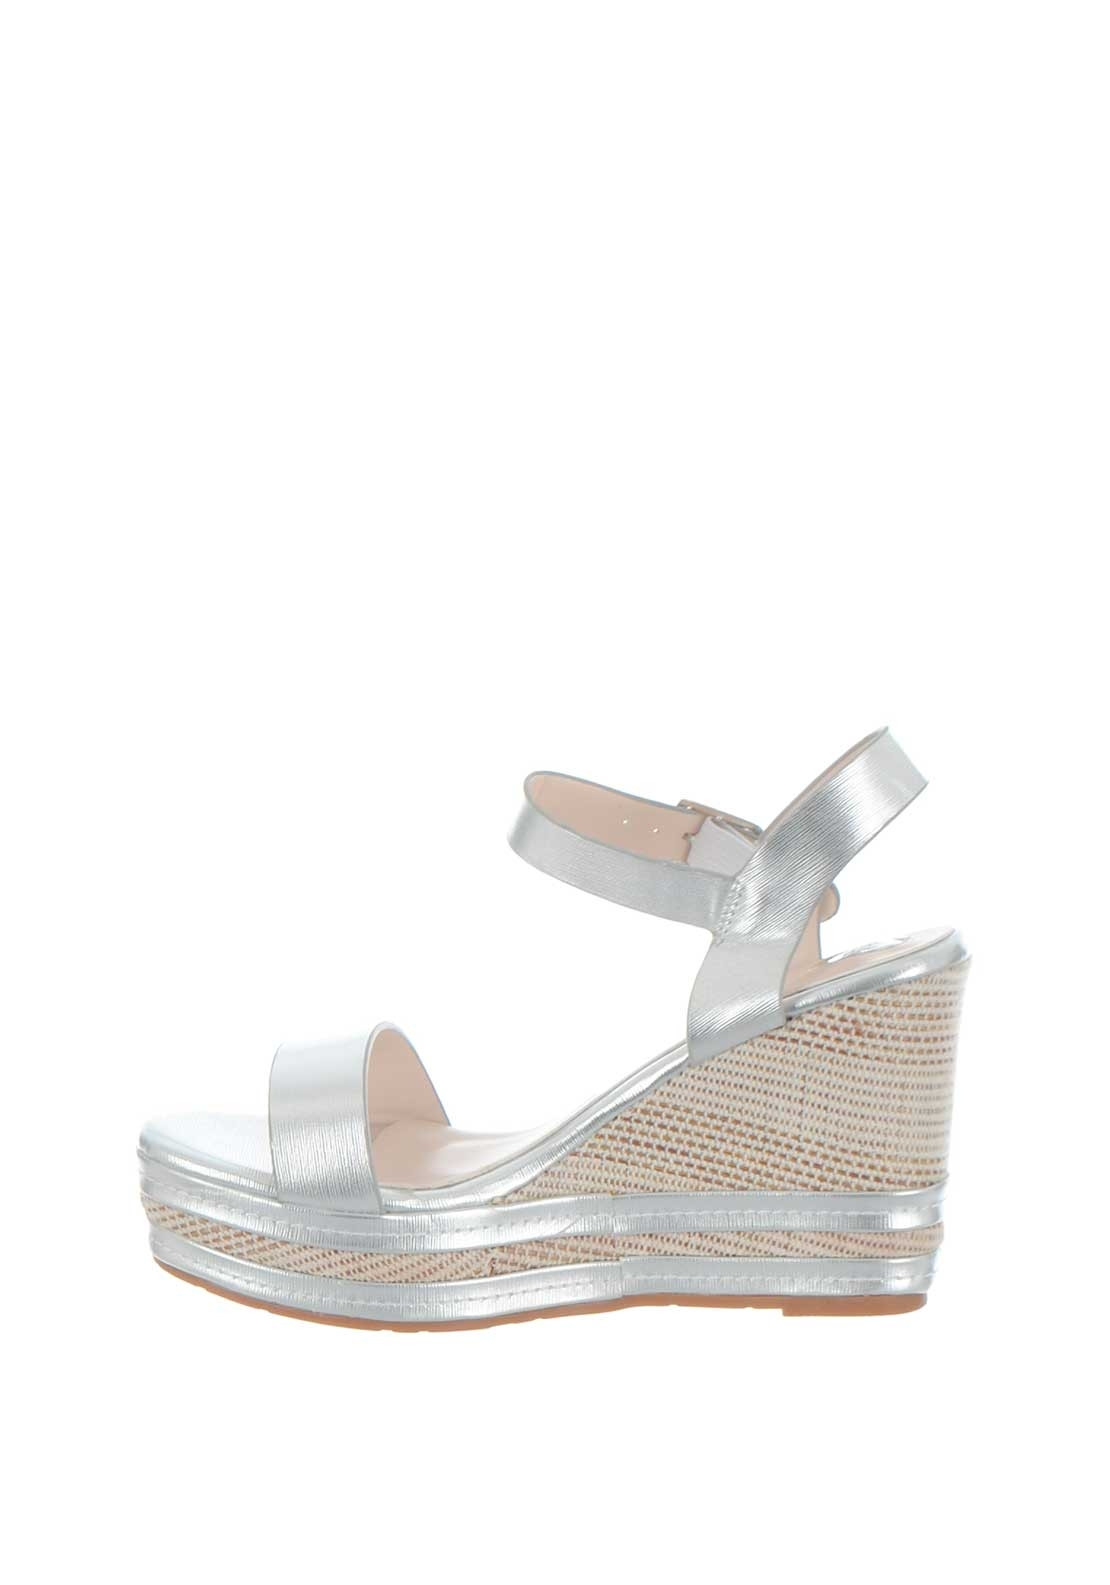 cf4f396a2eb Rant & Rave Angie Metallic Wedge Sandals, Silver